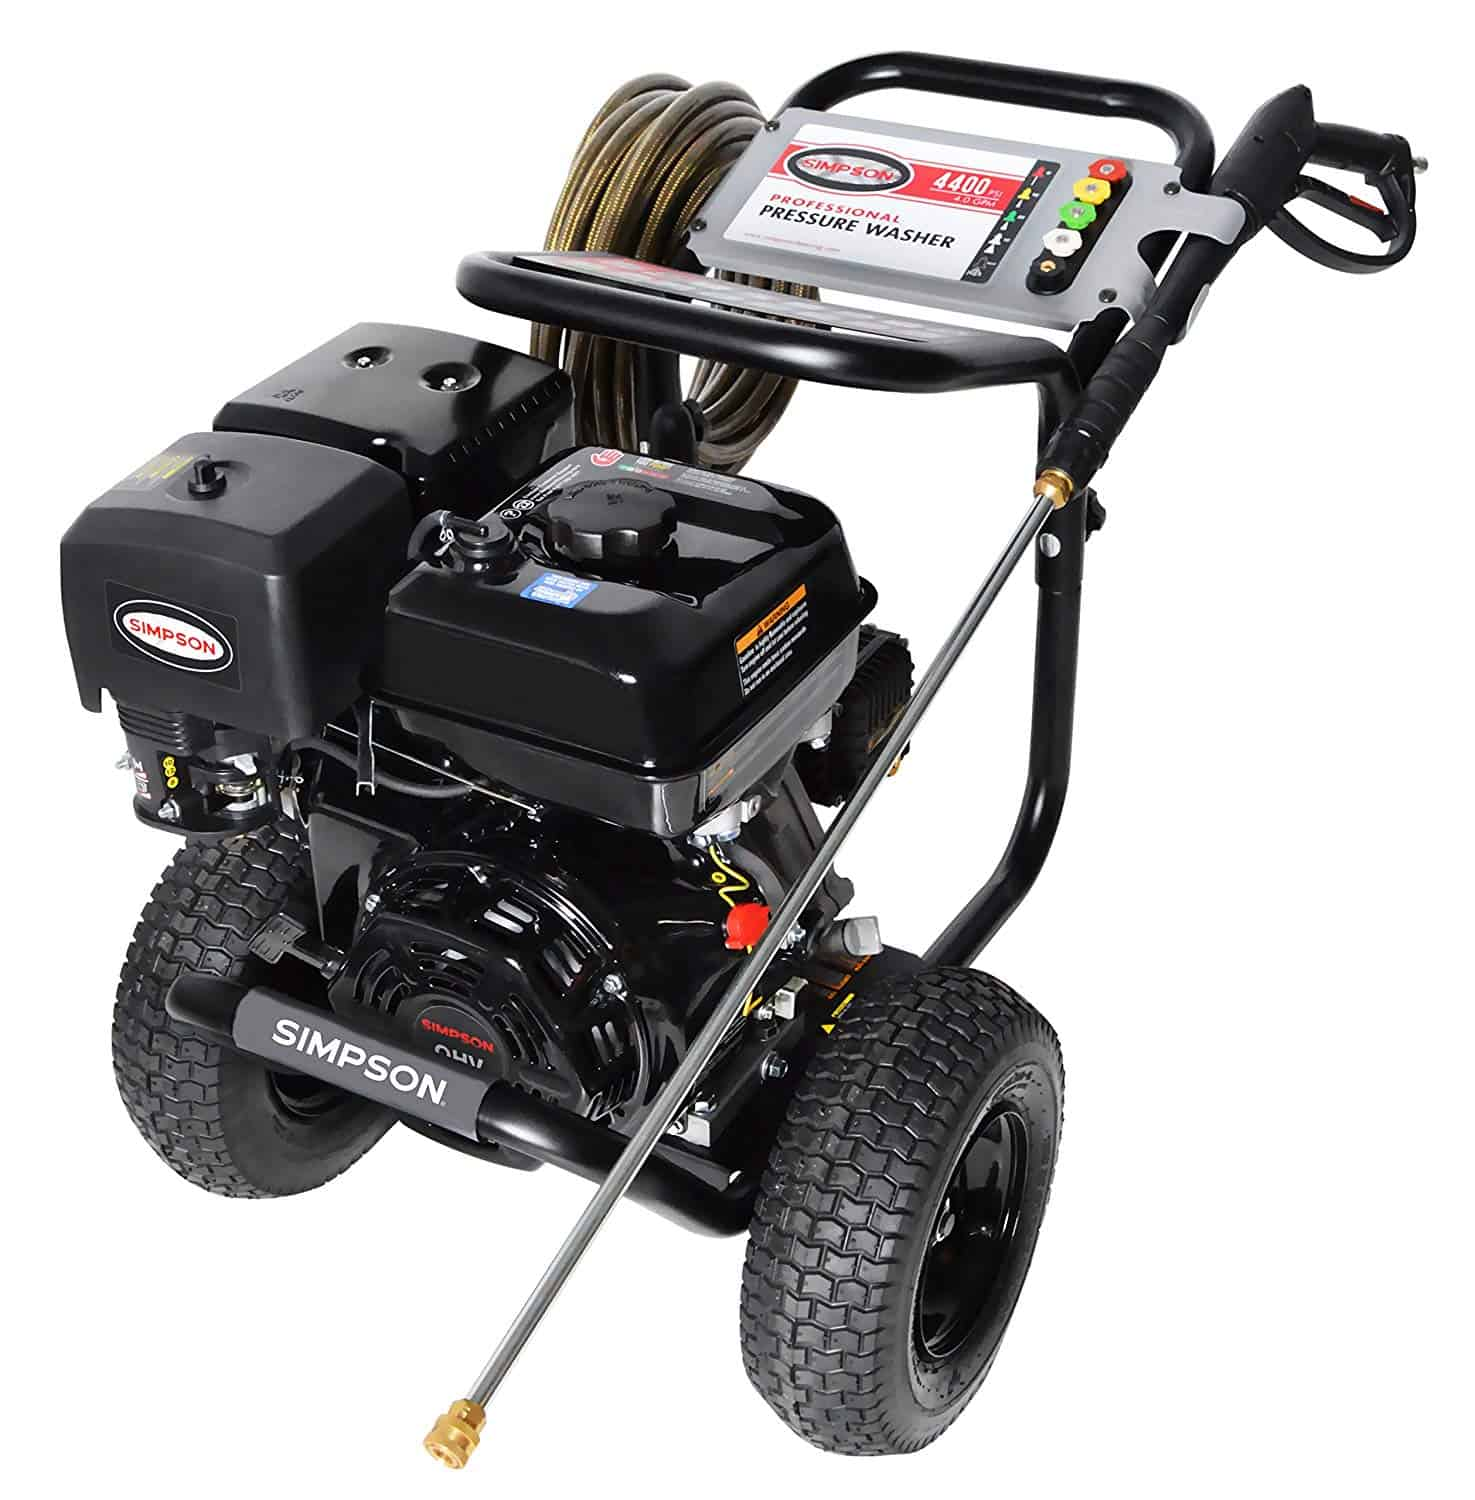 Simpson Pressure Washer Review A Comparison Of Some Of